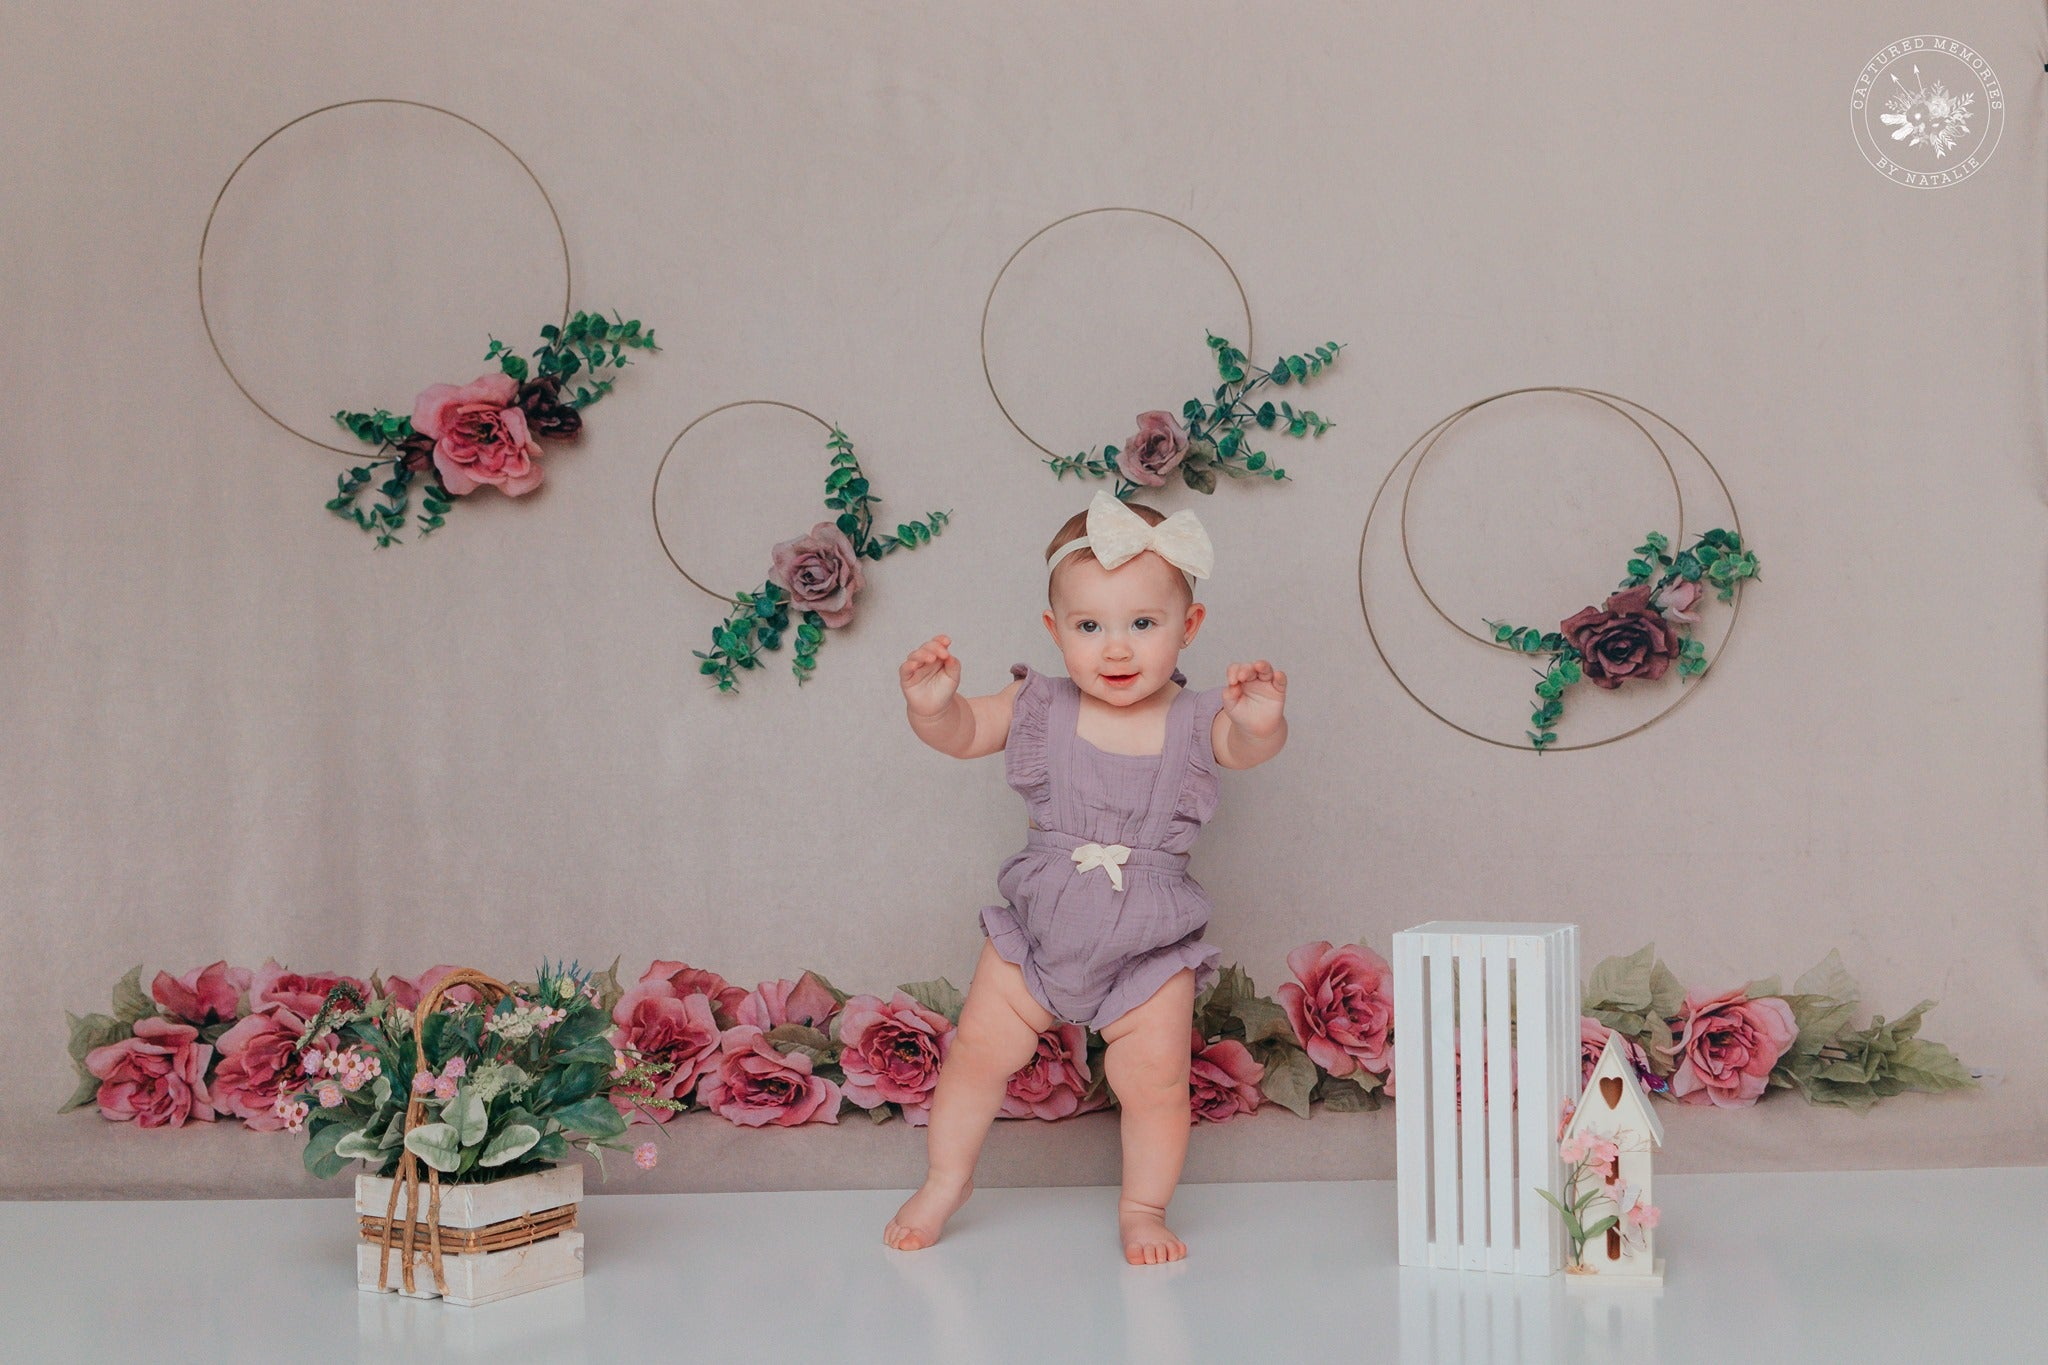 Load image into Gallery viewer, Kate Art Color Garland Rose Flower Children Backdrop for Photography Designed by Cassie Christiansen